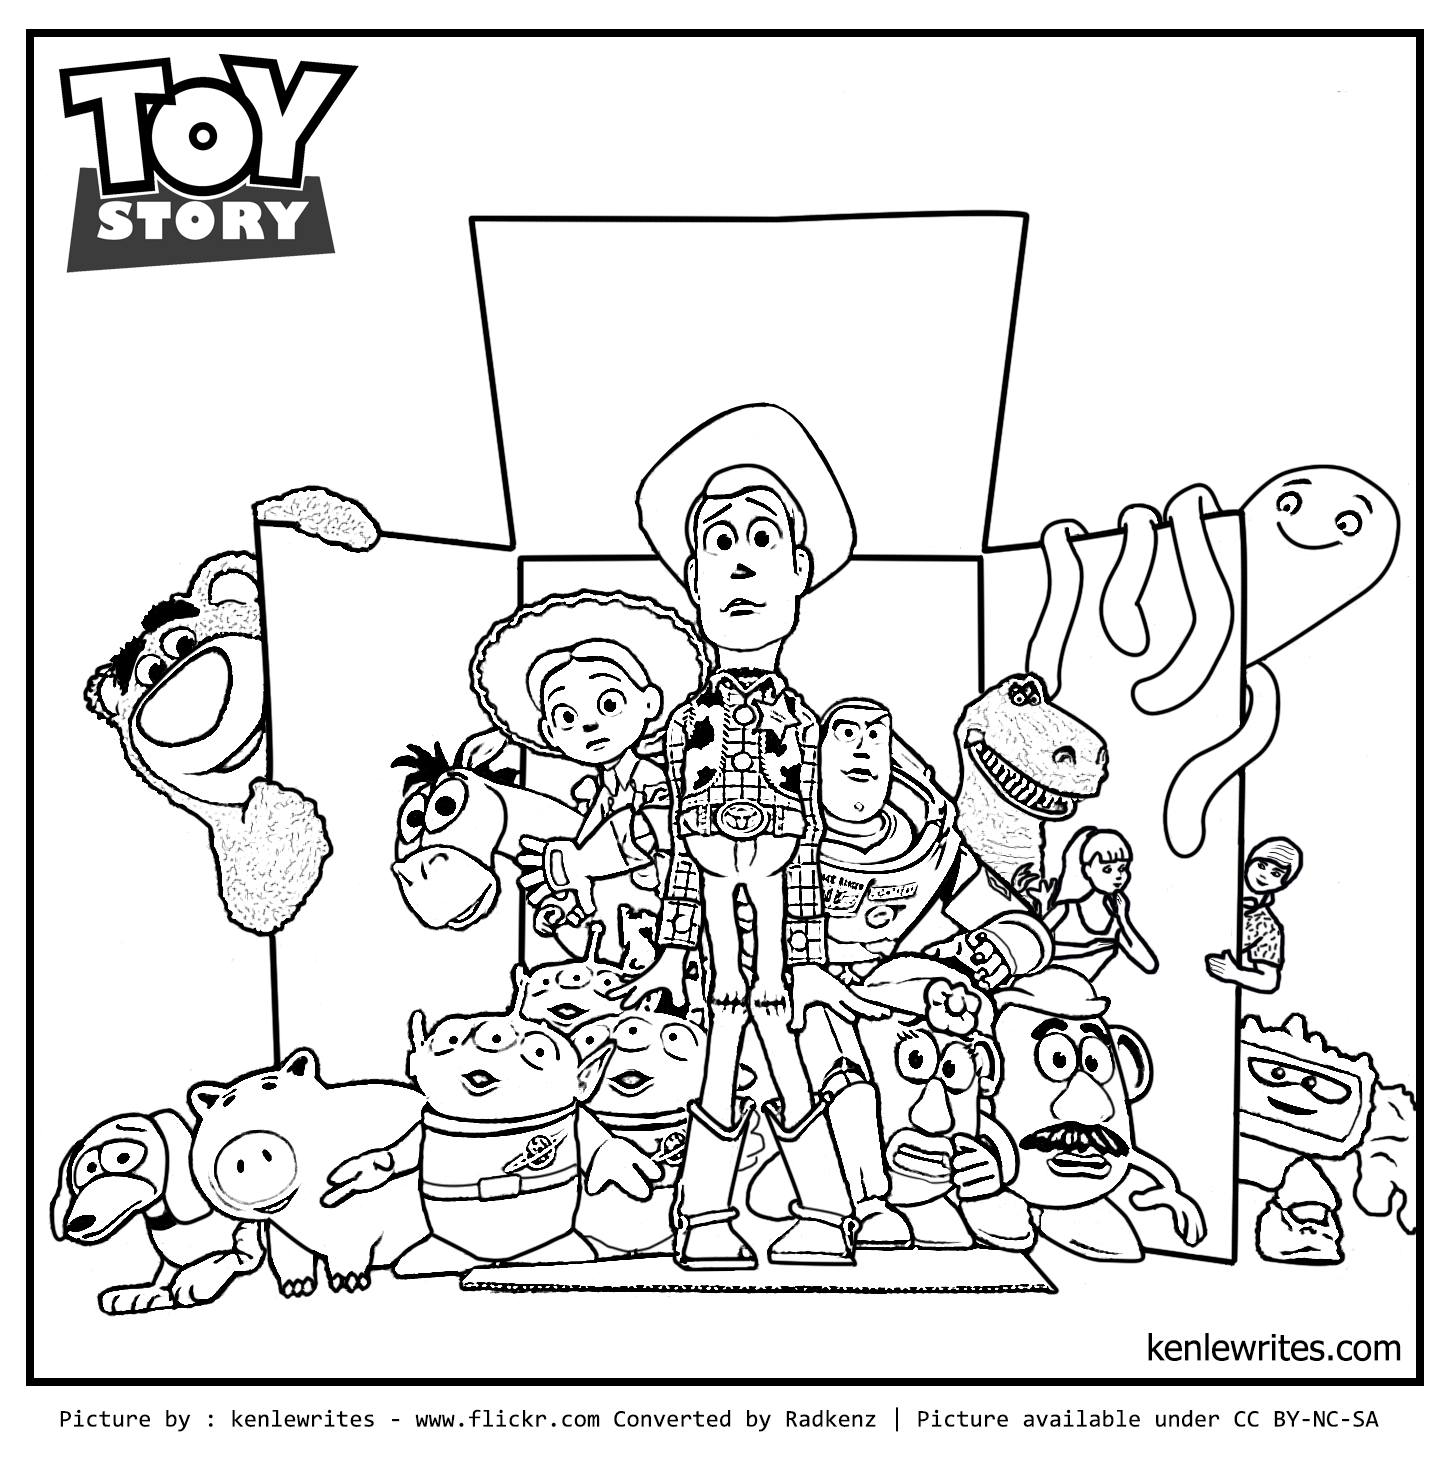 toy story coloring pages lotso zurg toy story colouring google search toy story story toy pages coloring lotso